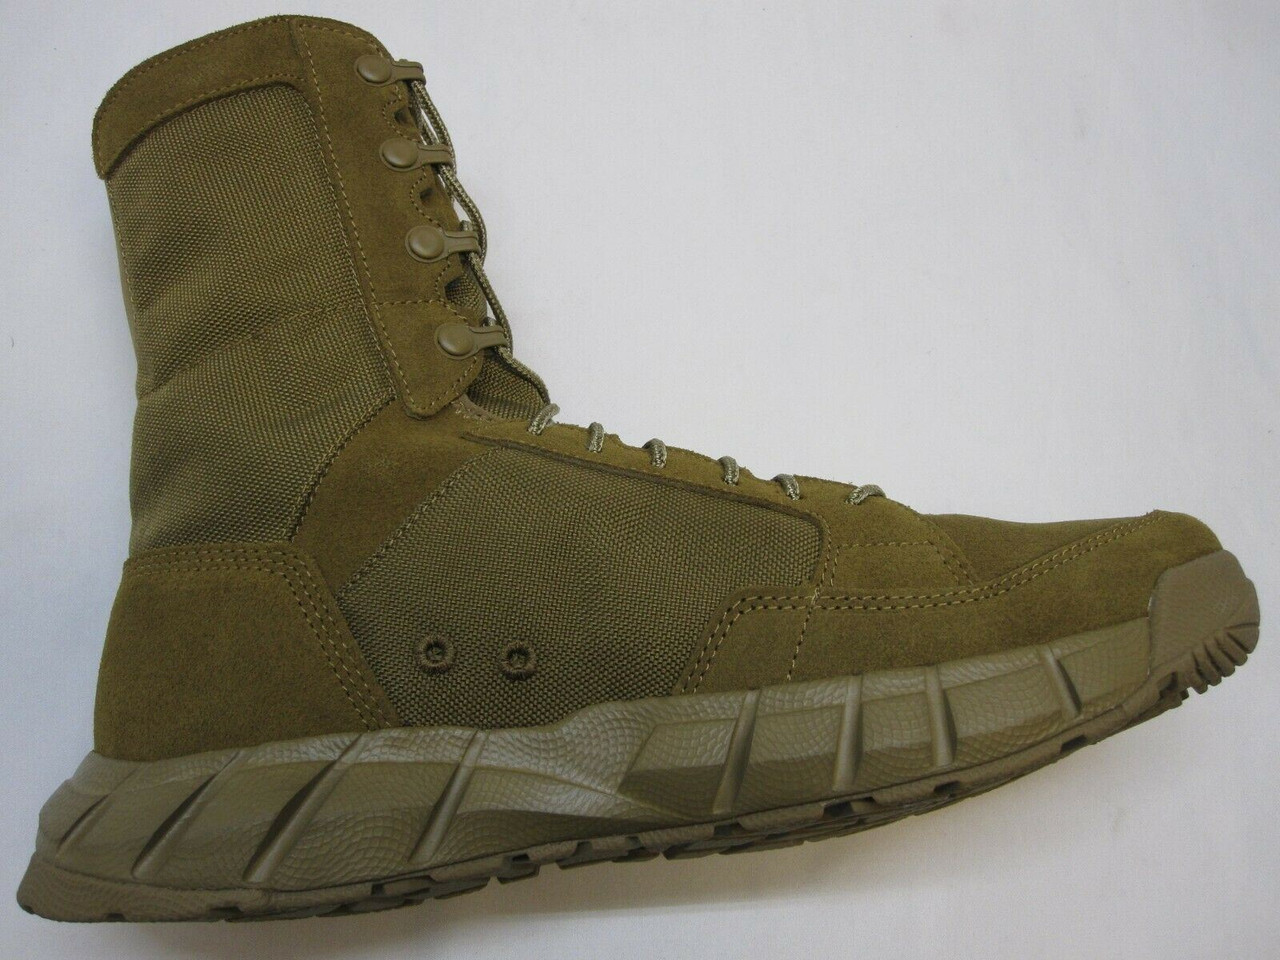 OAKLEY LT ASSAULT 2 ARMY OCP MILITARY COMBAT BOOTS COYOTE BROWN TACTICAL BOOT